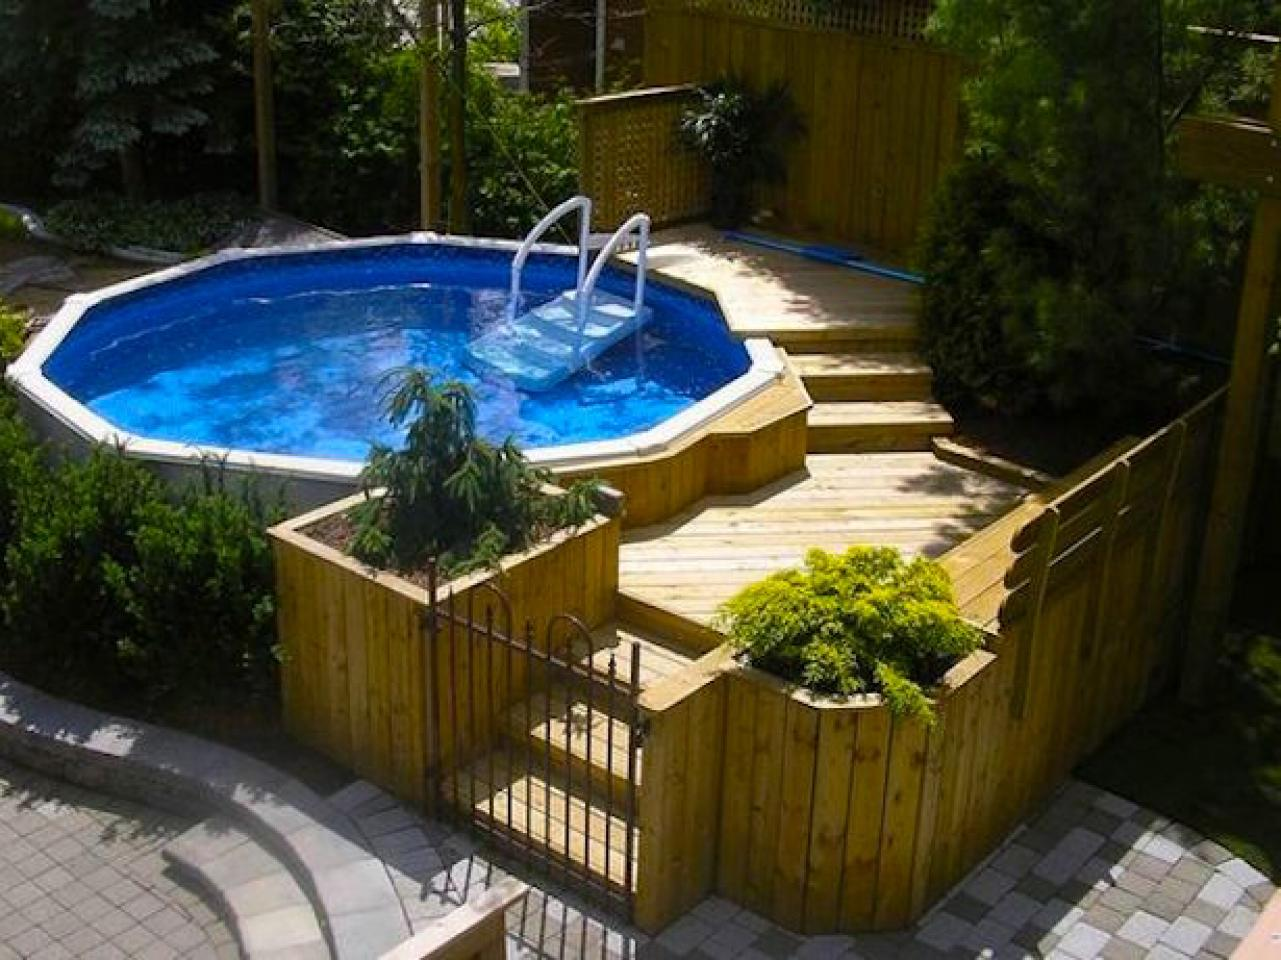 17 Ways To Add Style To An Above Ground Pool Hgtv 39 S Decorating Design Blog Hgtv